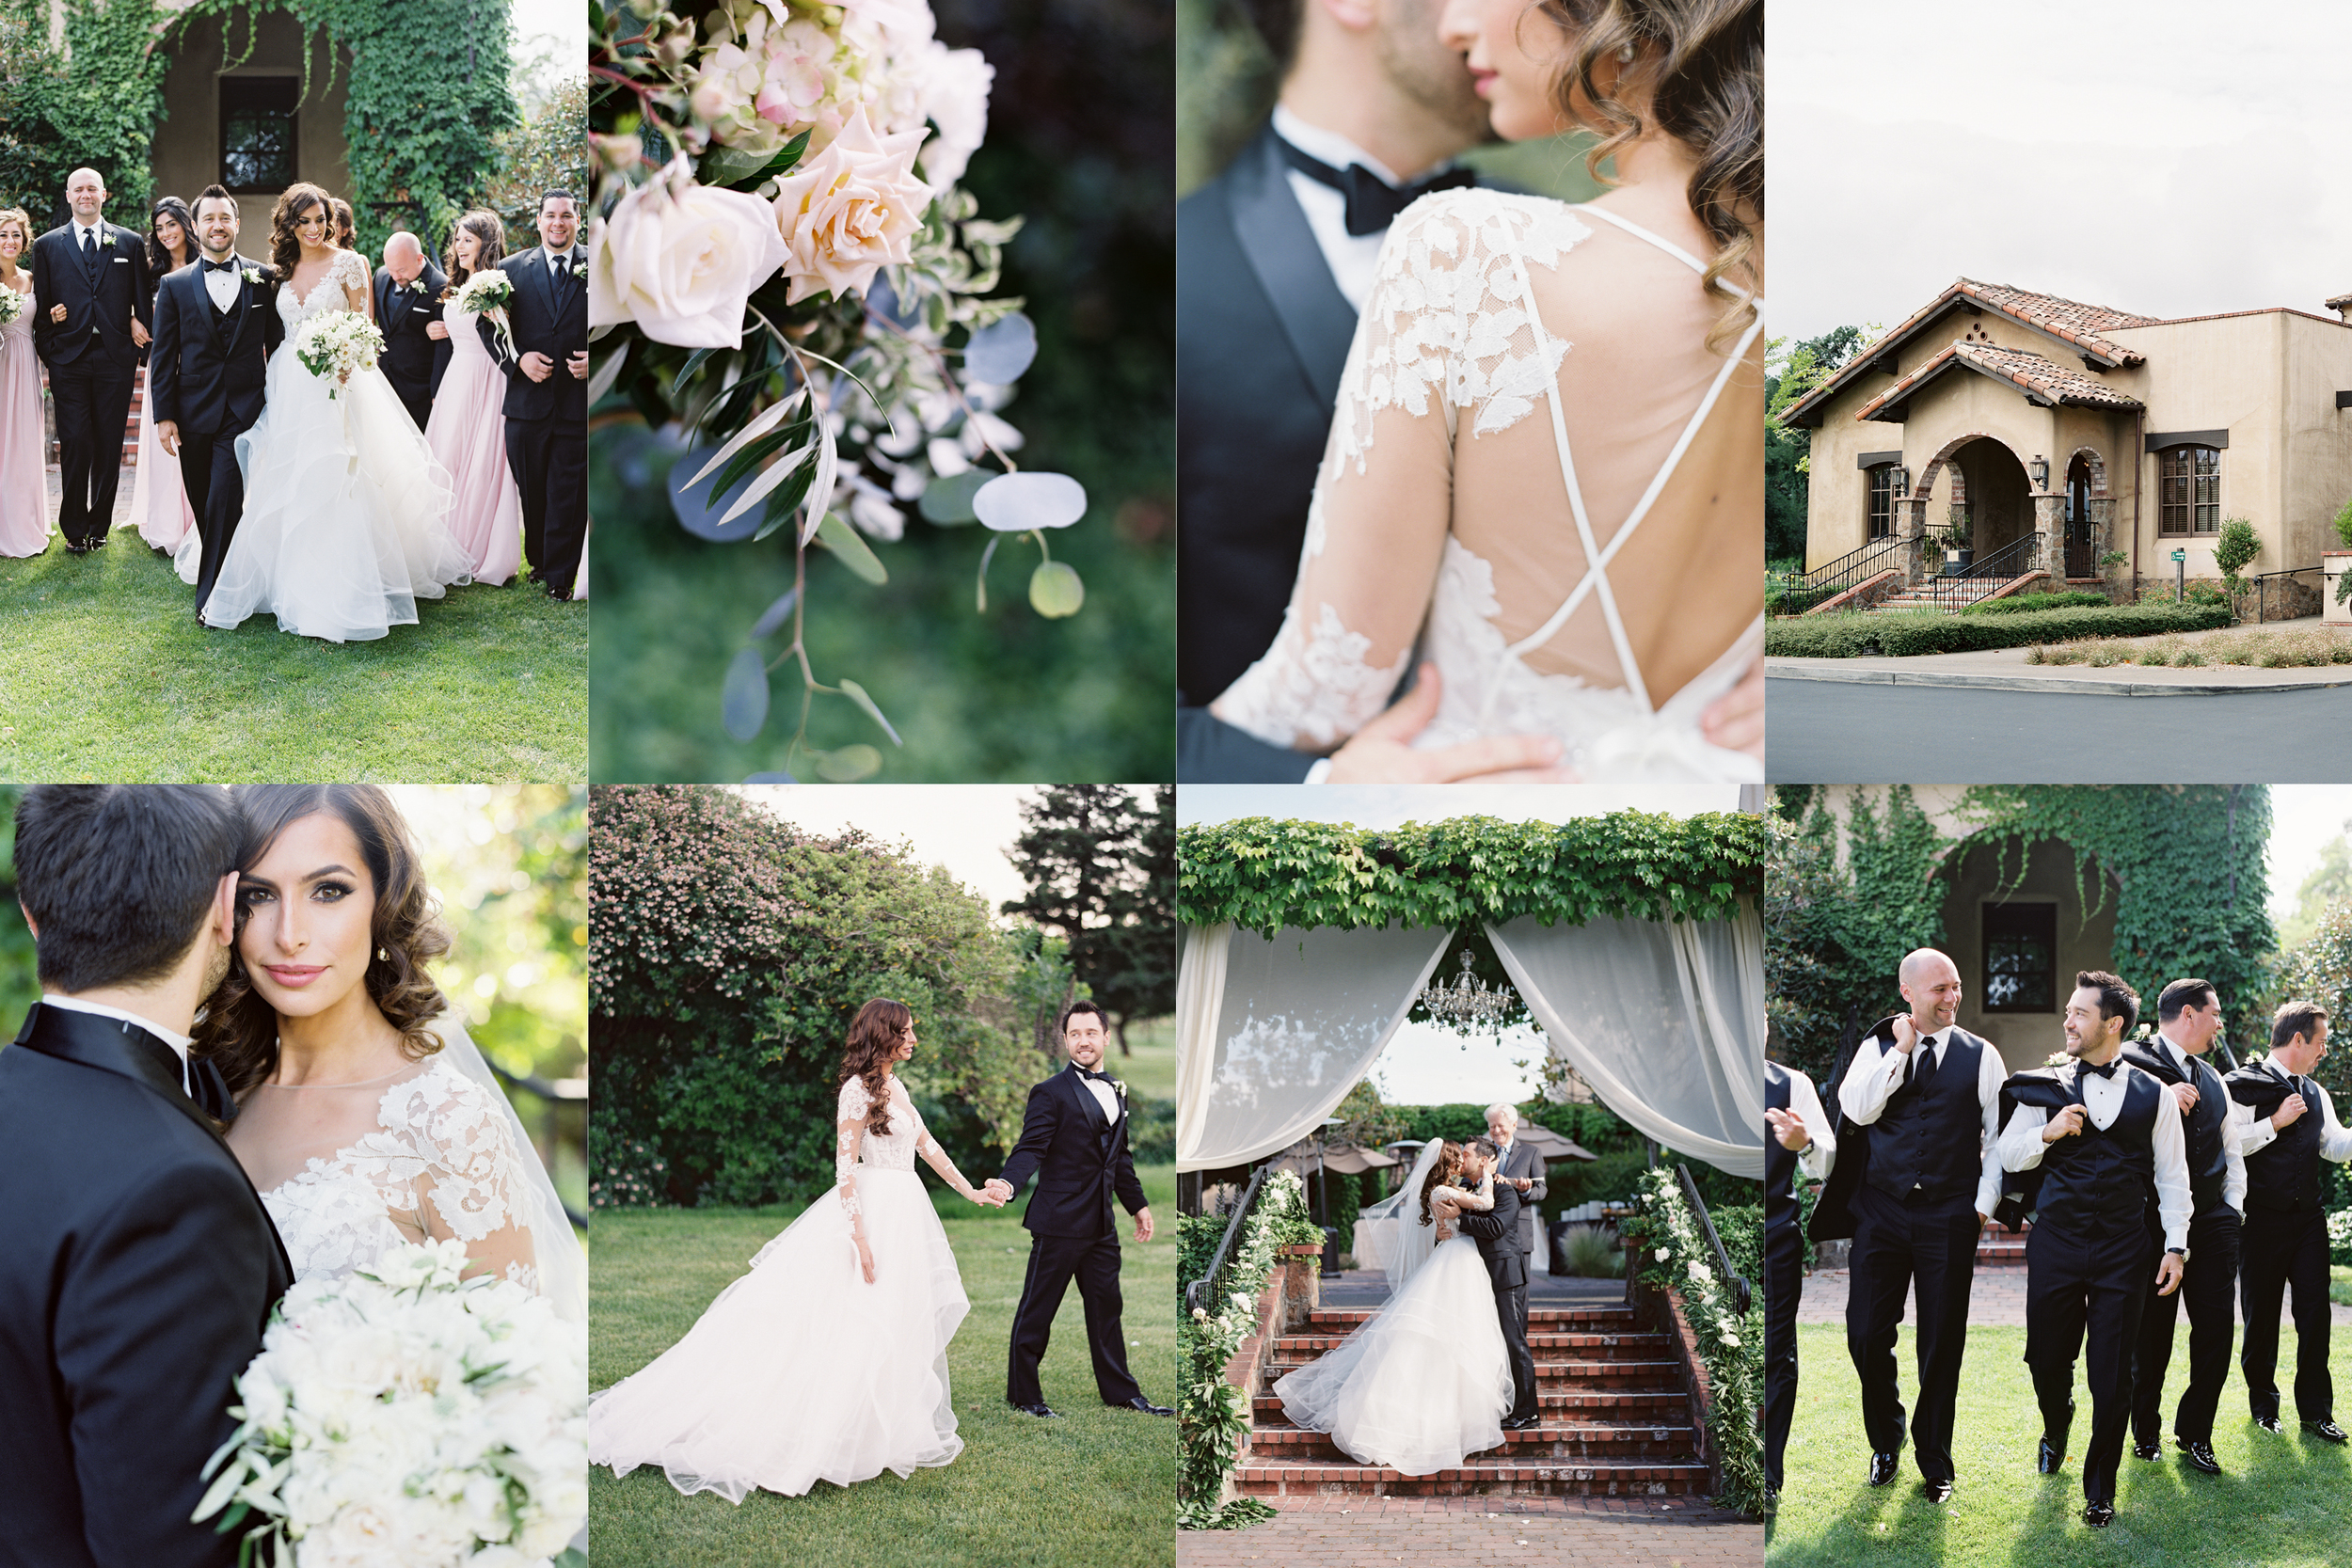 Cammie + Mark - Preview1.jpg